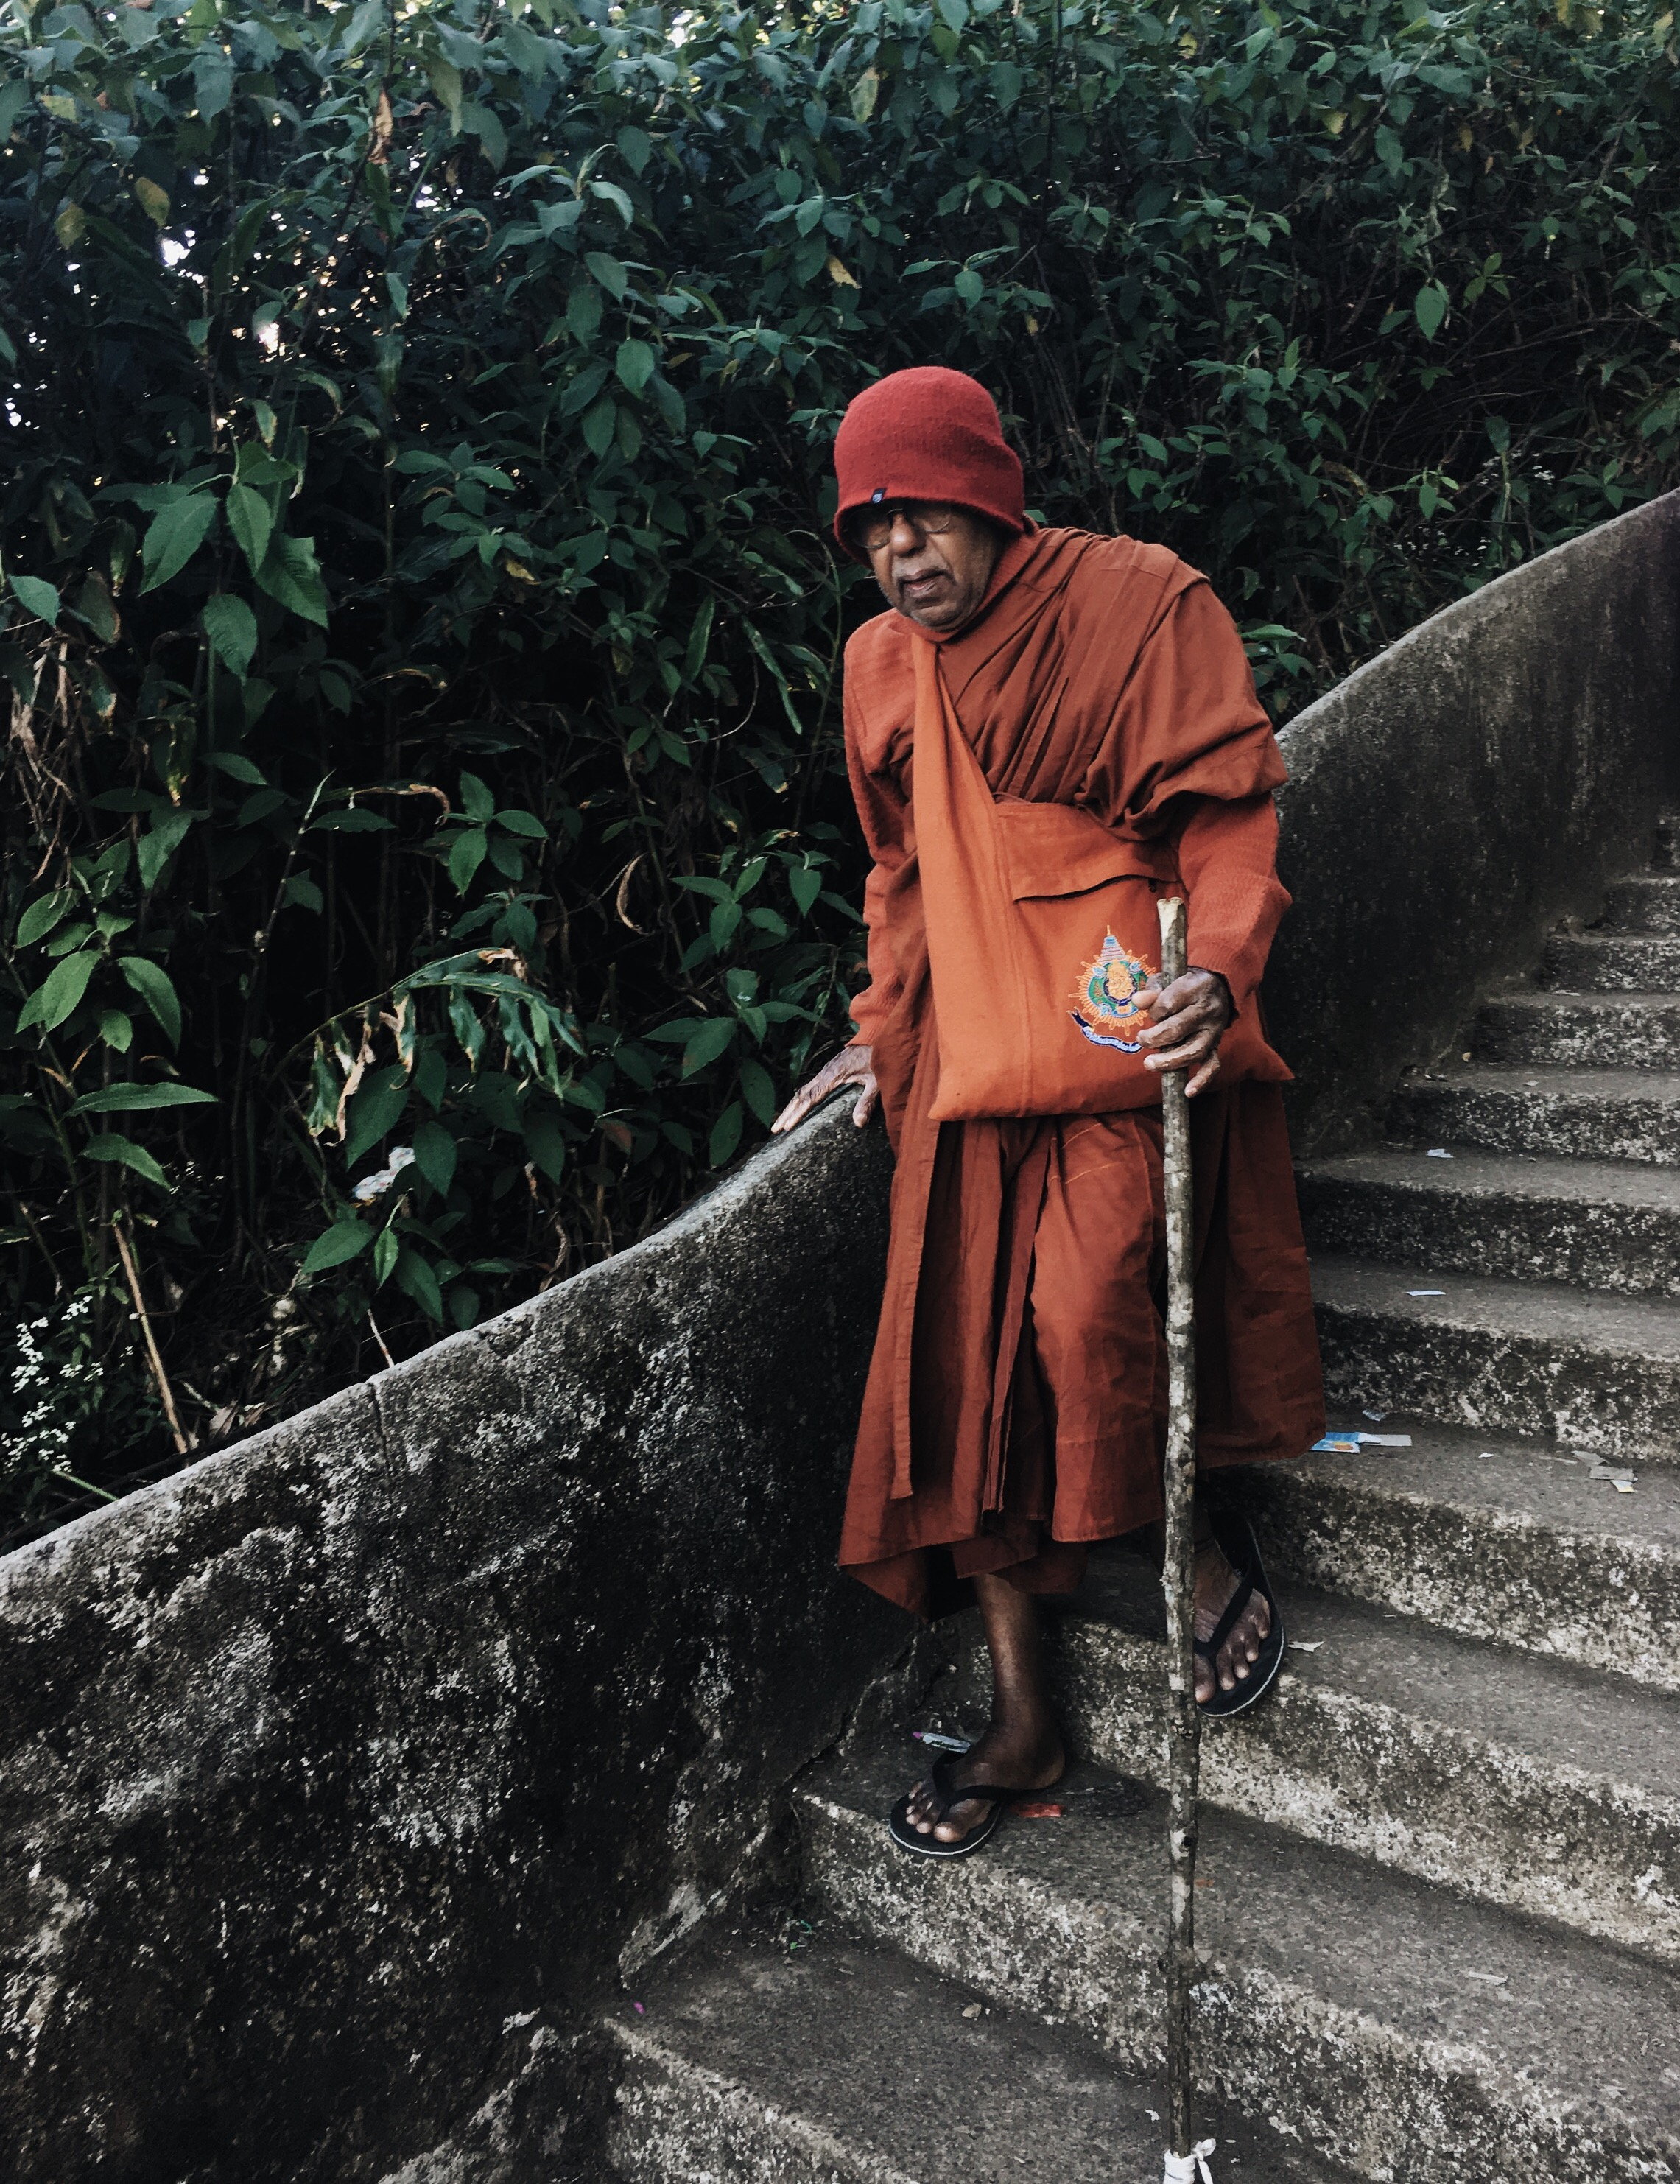 """I call this man the """"Monochrome Monk"""", observed during the descent of definitely the weirdest night of my life. Adam's Peak, Feb 2017"""